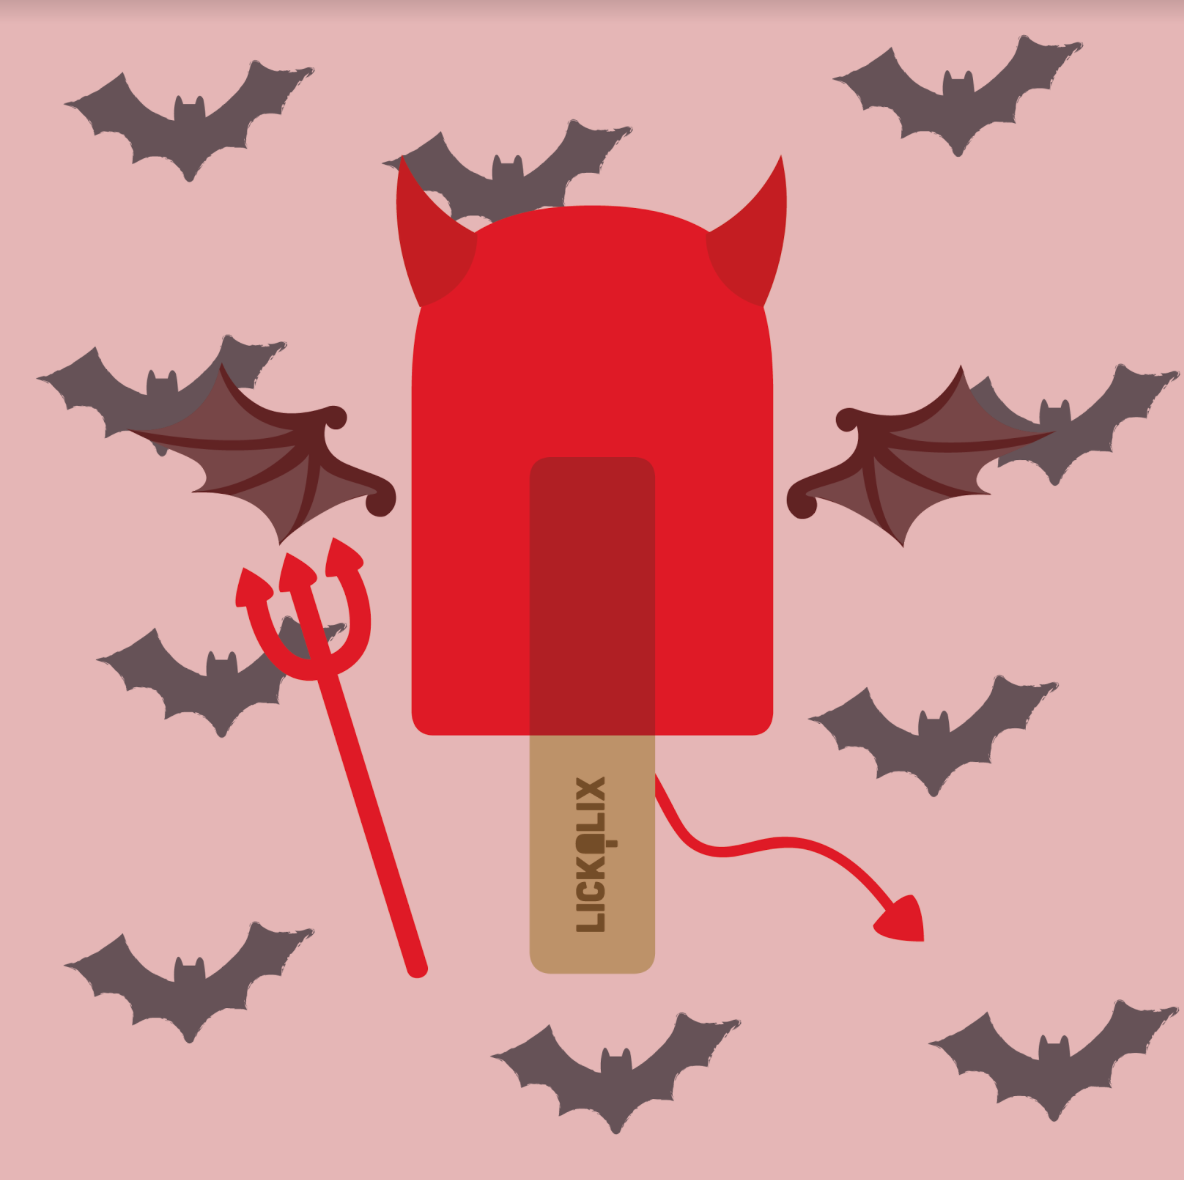 We dressed our loll icon up with a classic DEVIL costume! What do you think?